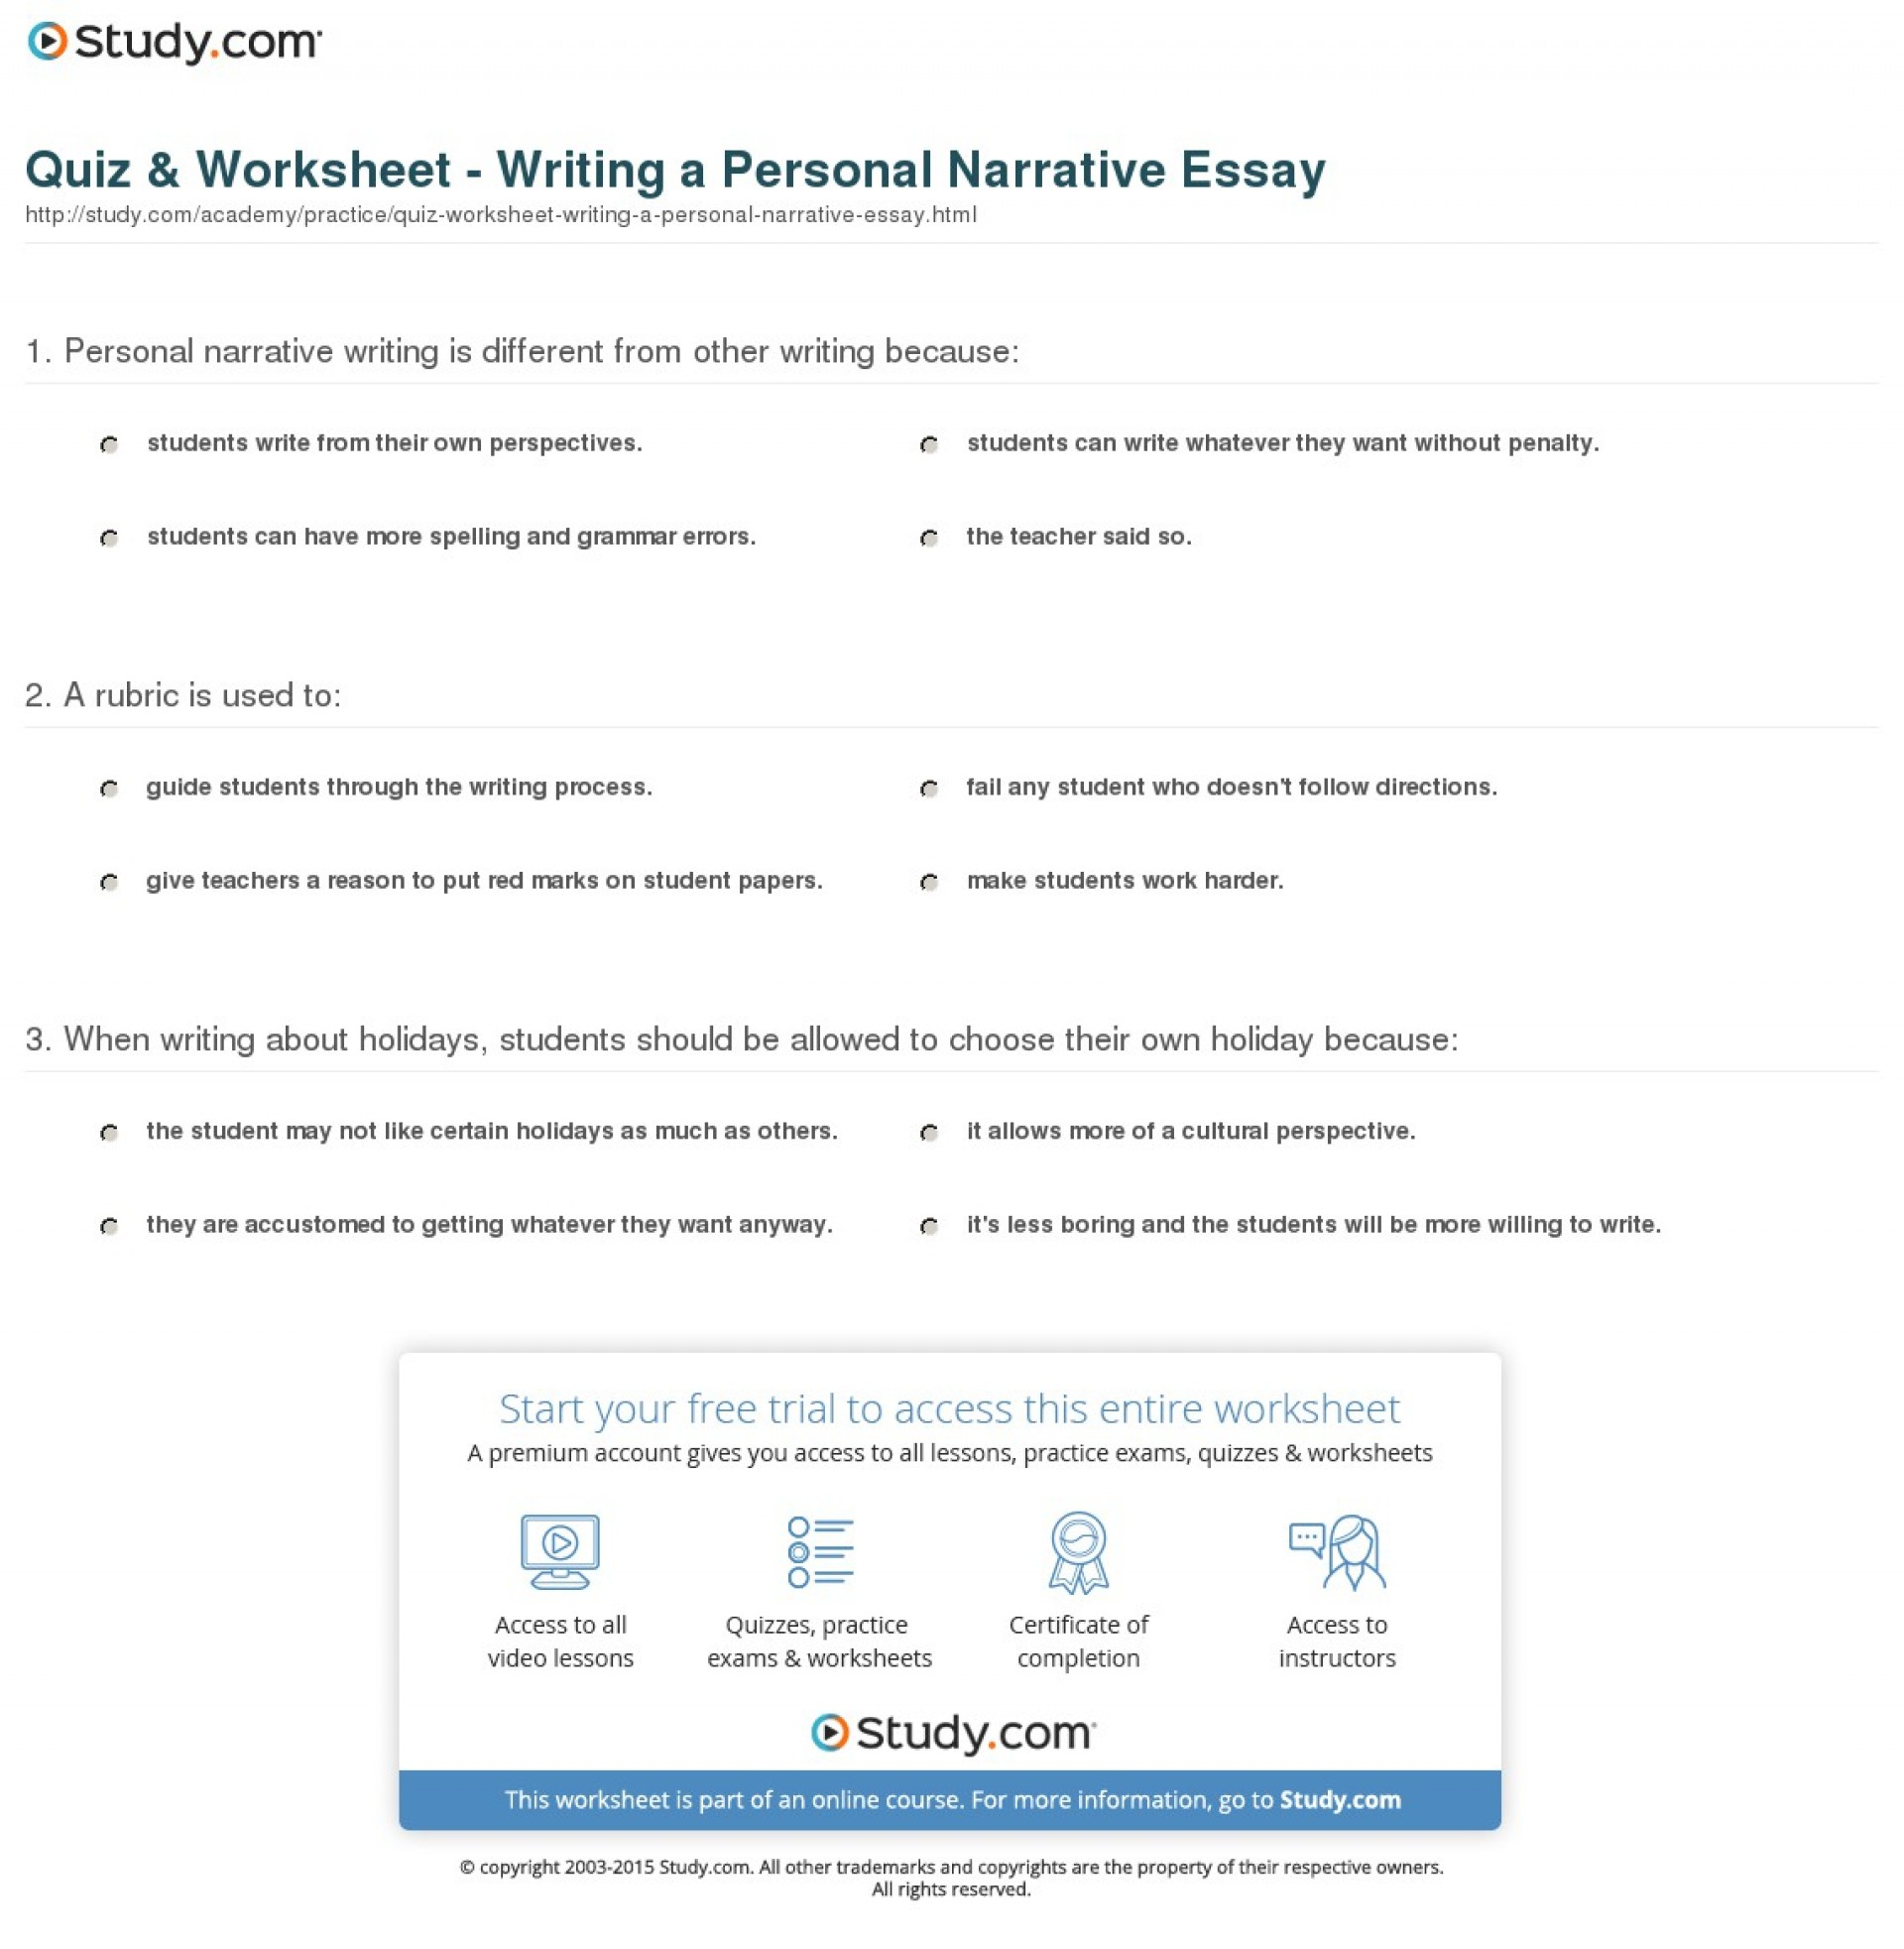 019 Quiz Worksheet Writing Personal Narrative Essay Topics For Imposing A Essays College Students 3 1920